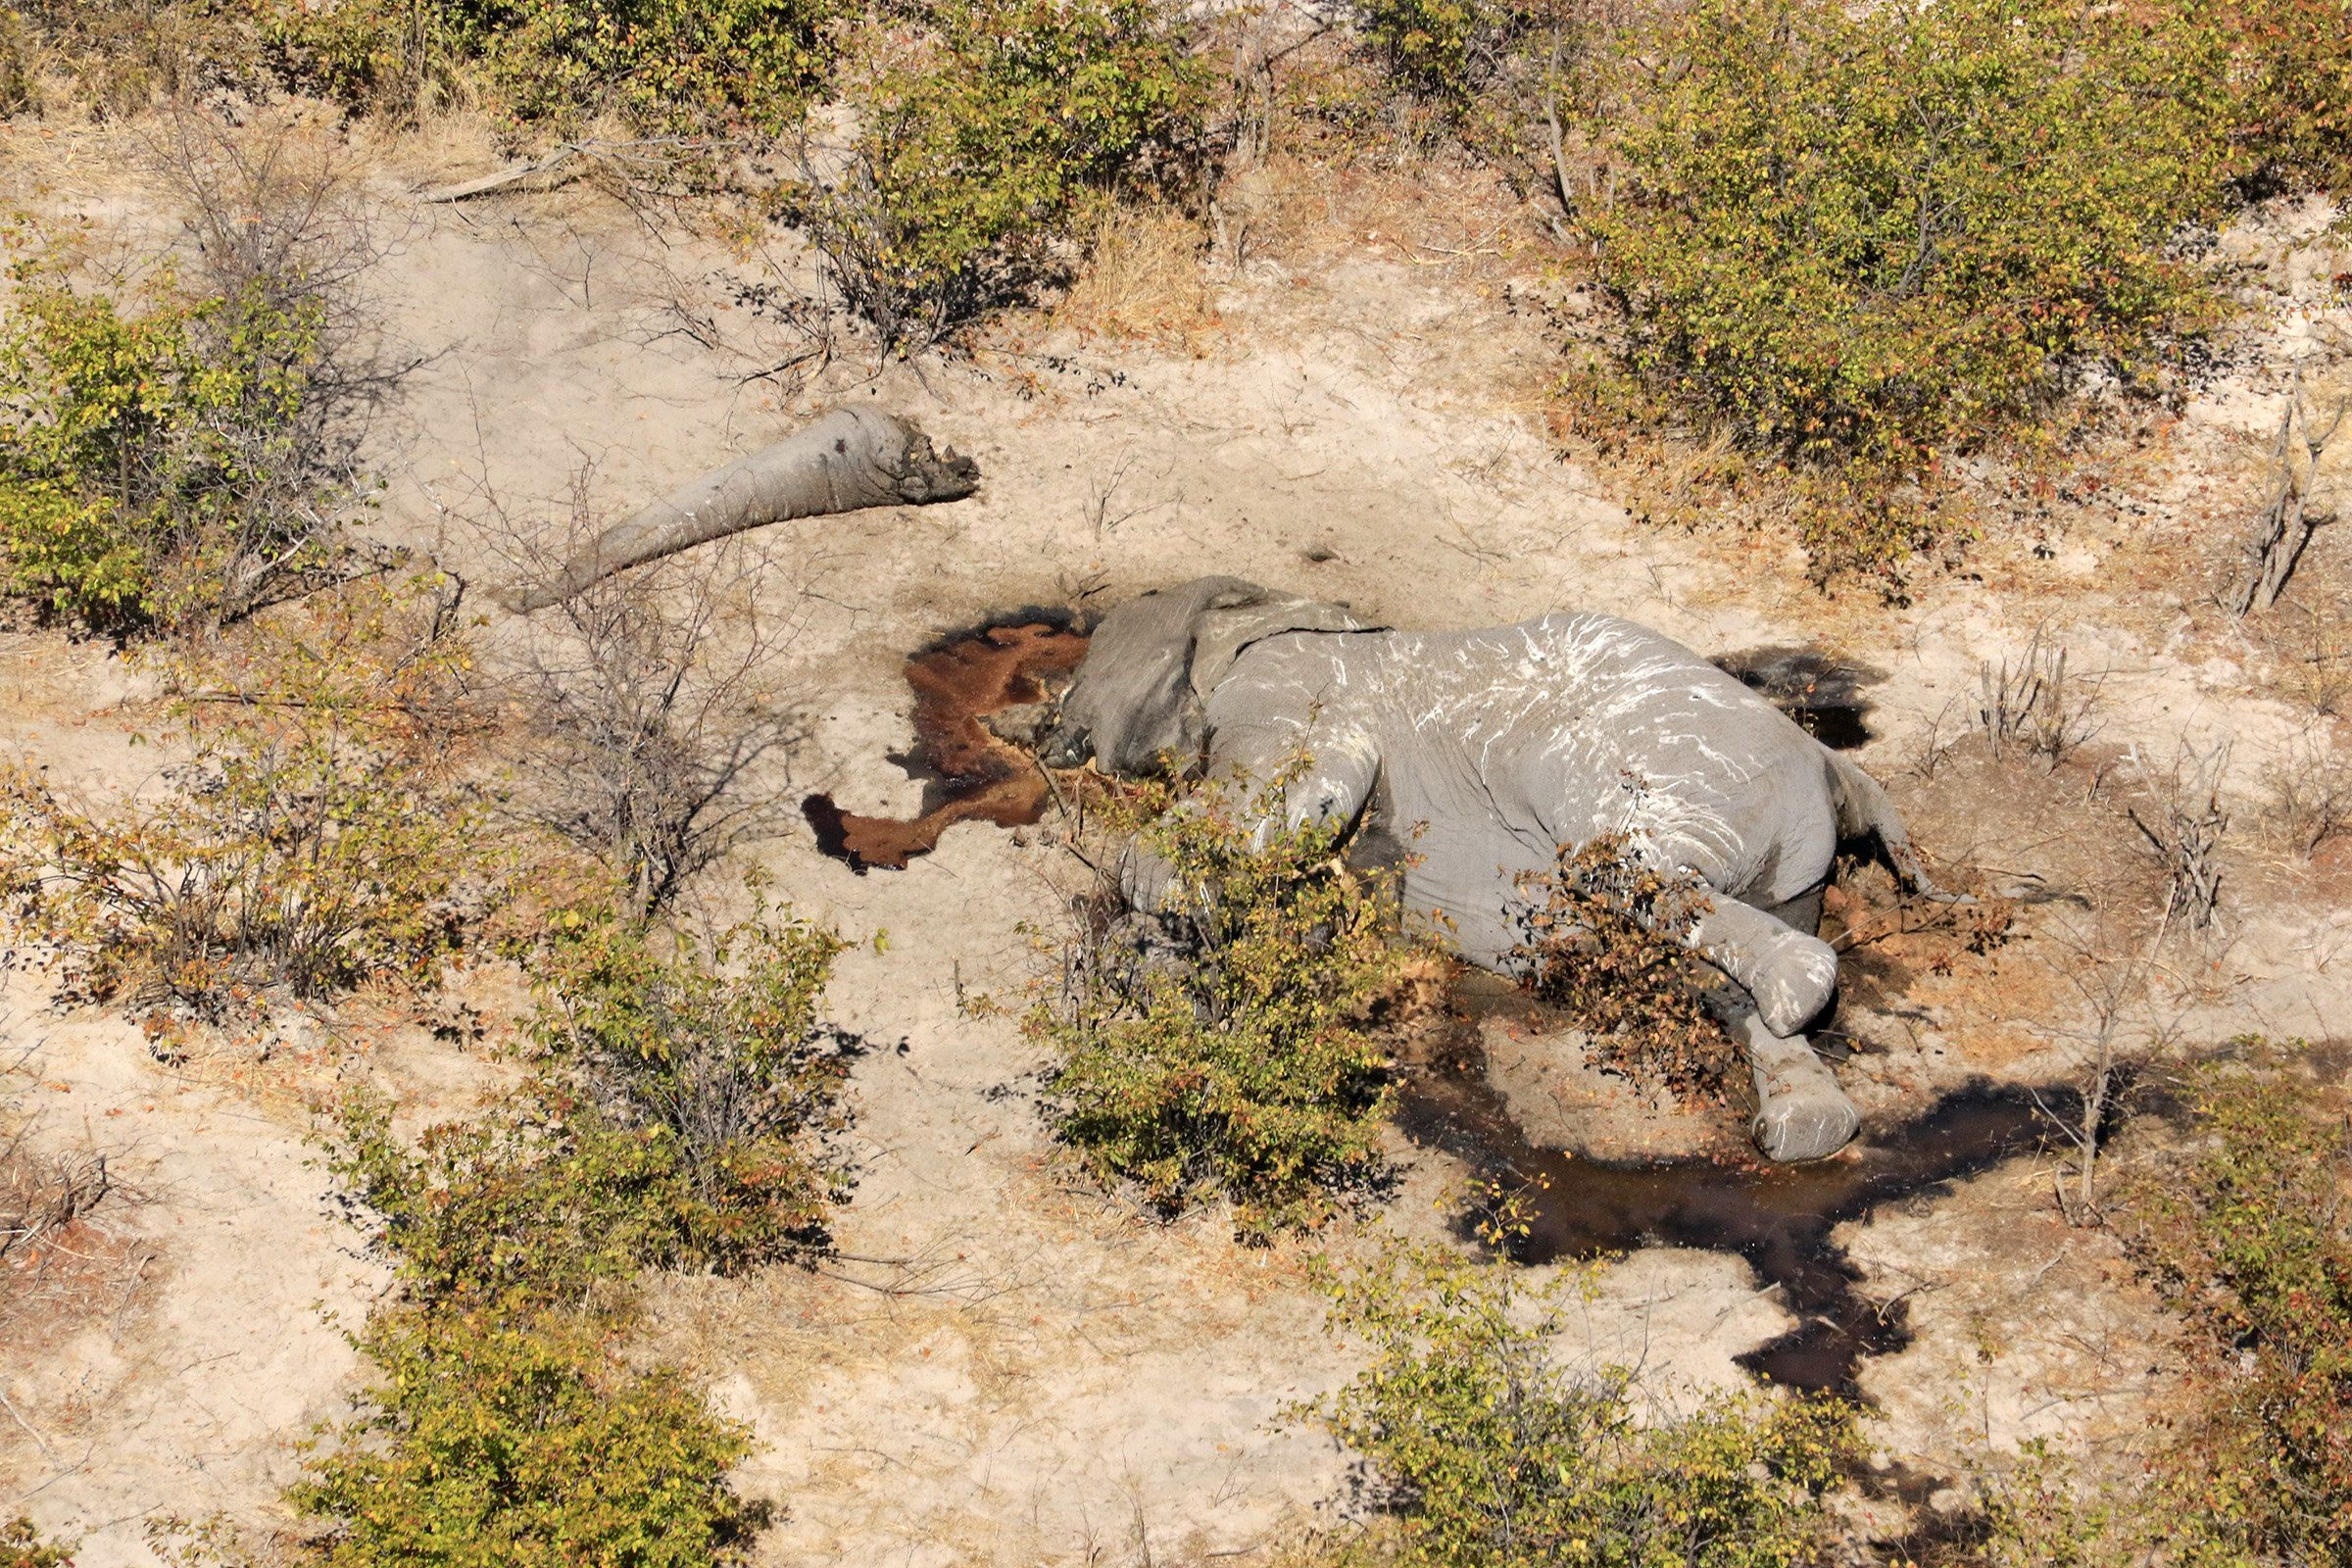 Conservationists: Dozens of elephants killed in Botswana 'poaching frenzy'